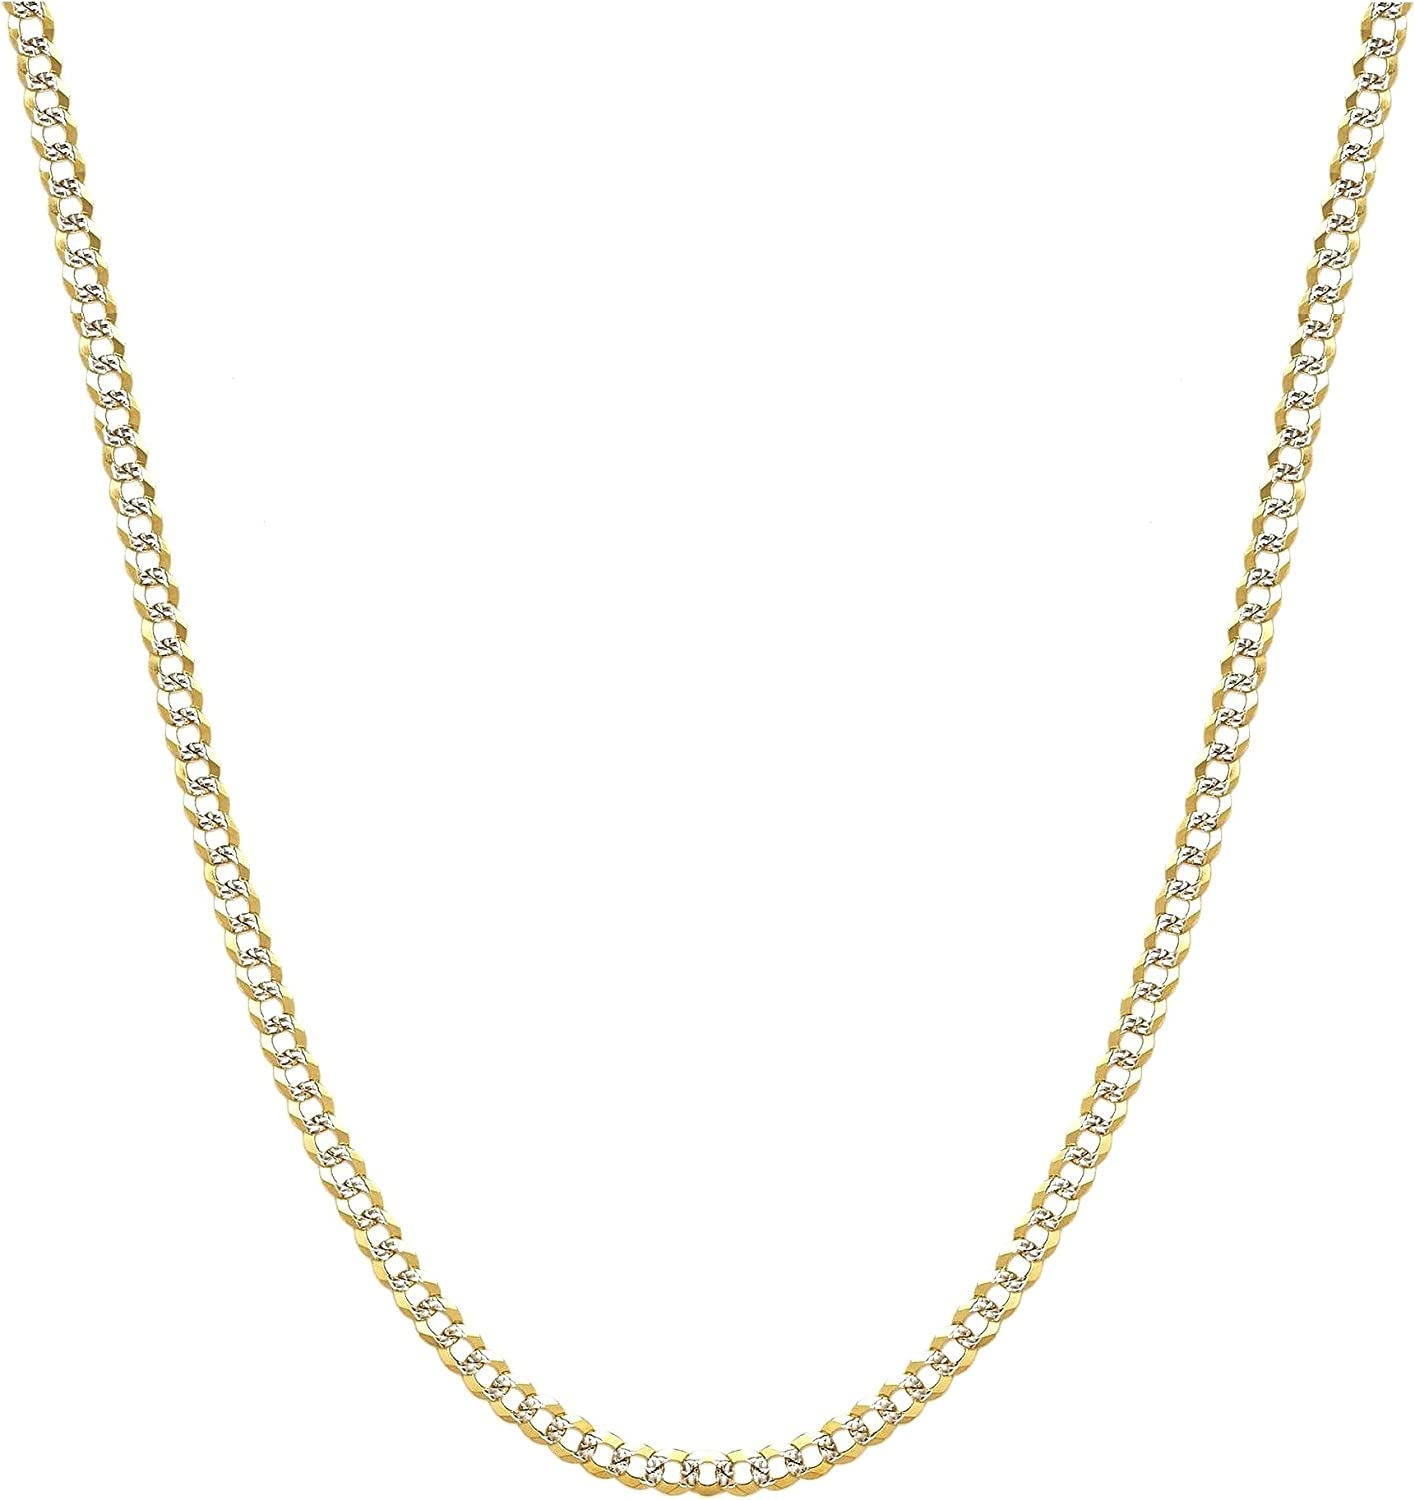 10K Gold 3.5mm Two Tone Cuban Curb Diamond Cut Pave Chain Necklace -Multiple Lengths Available